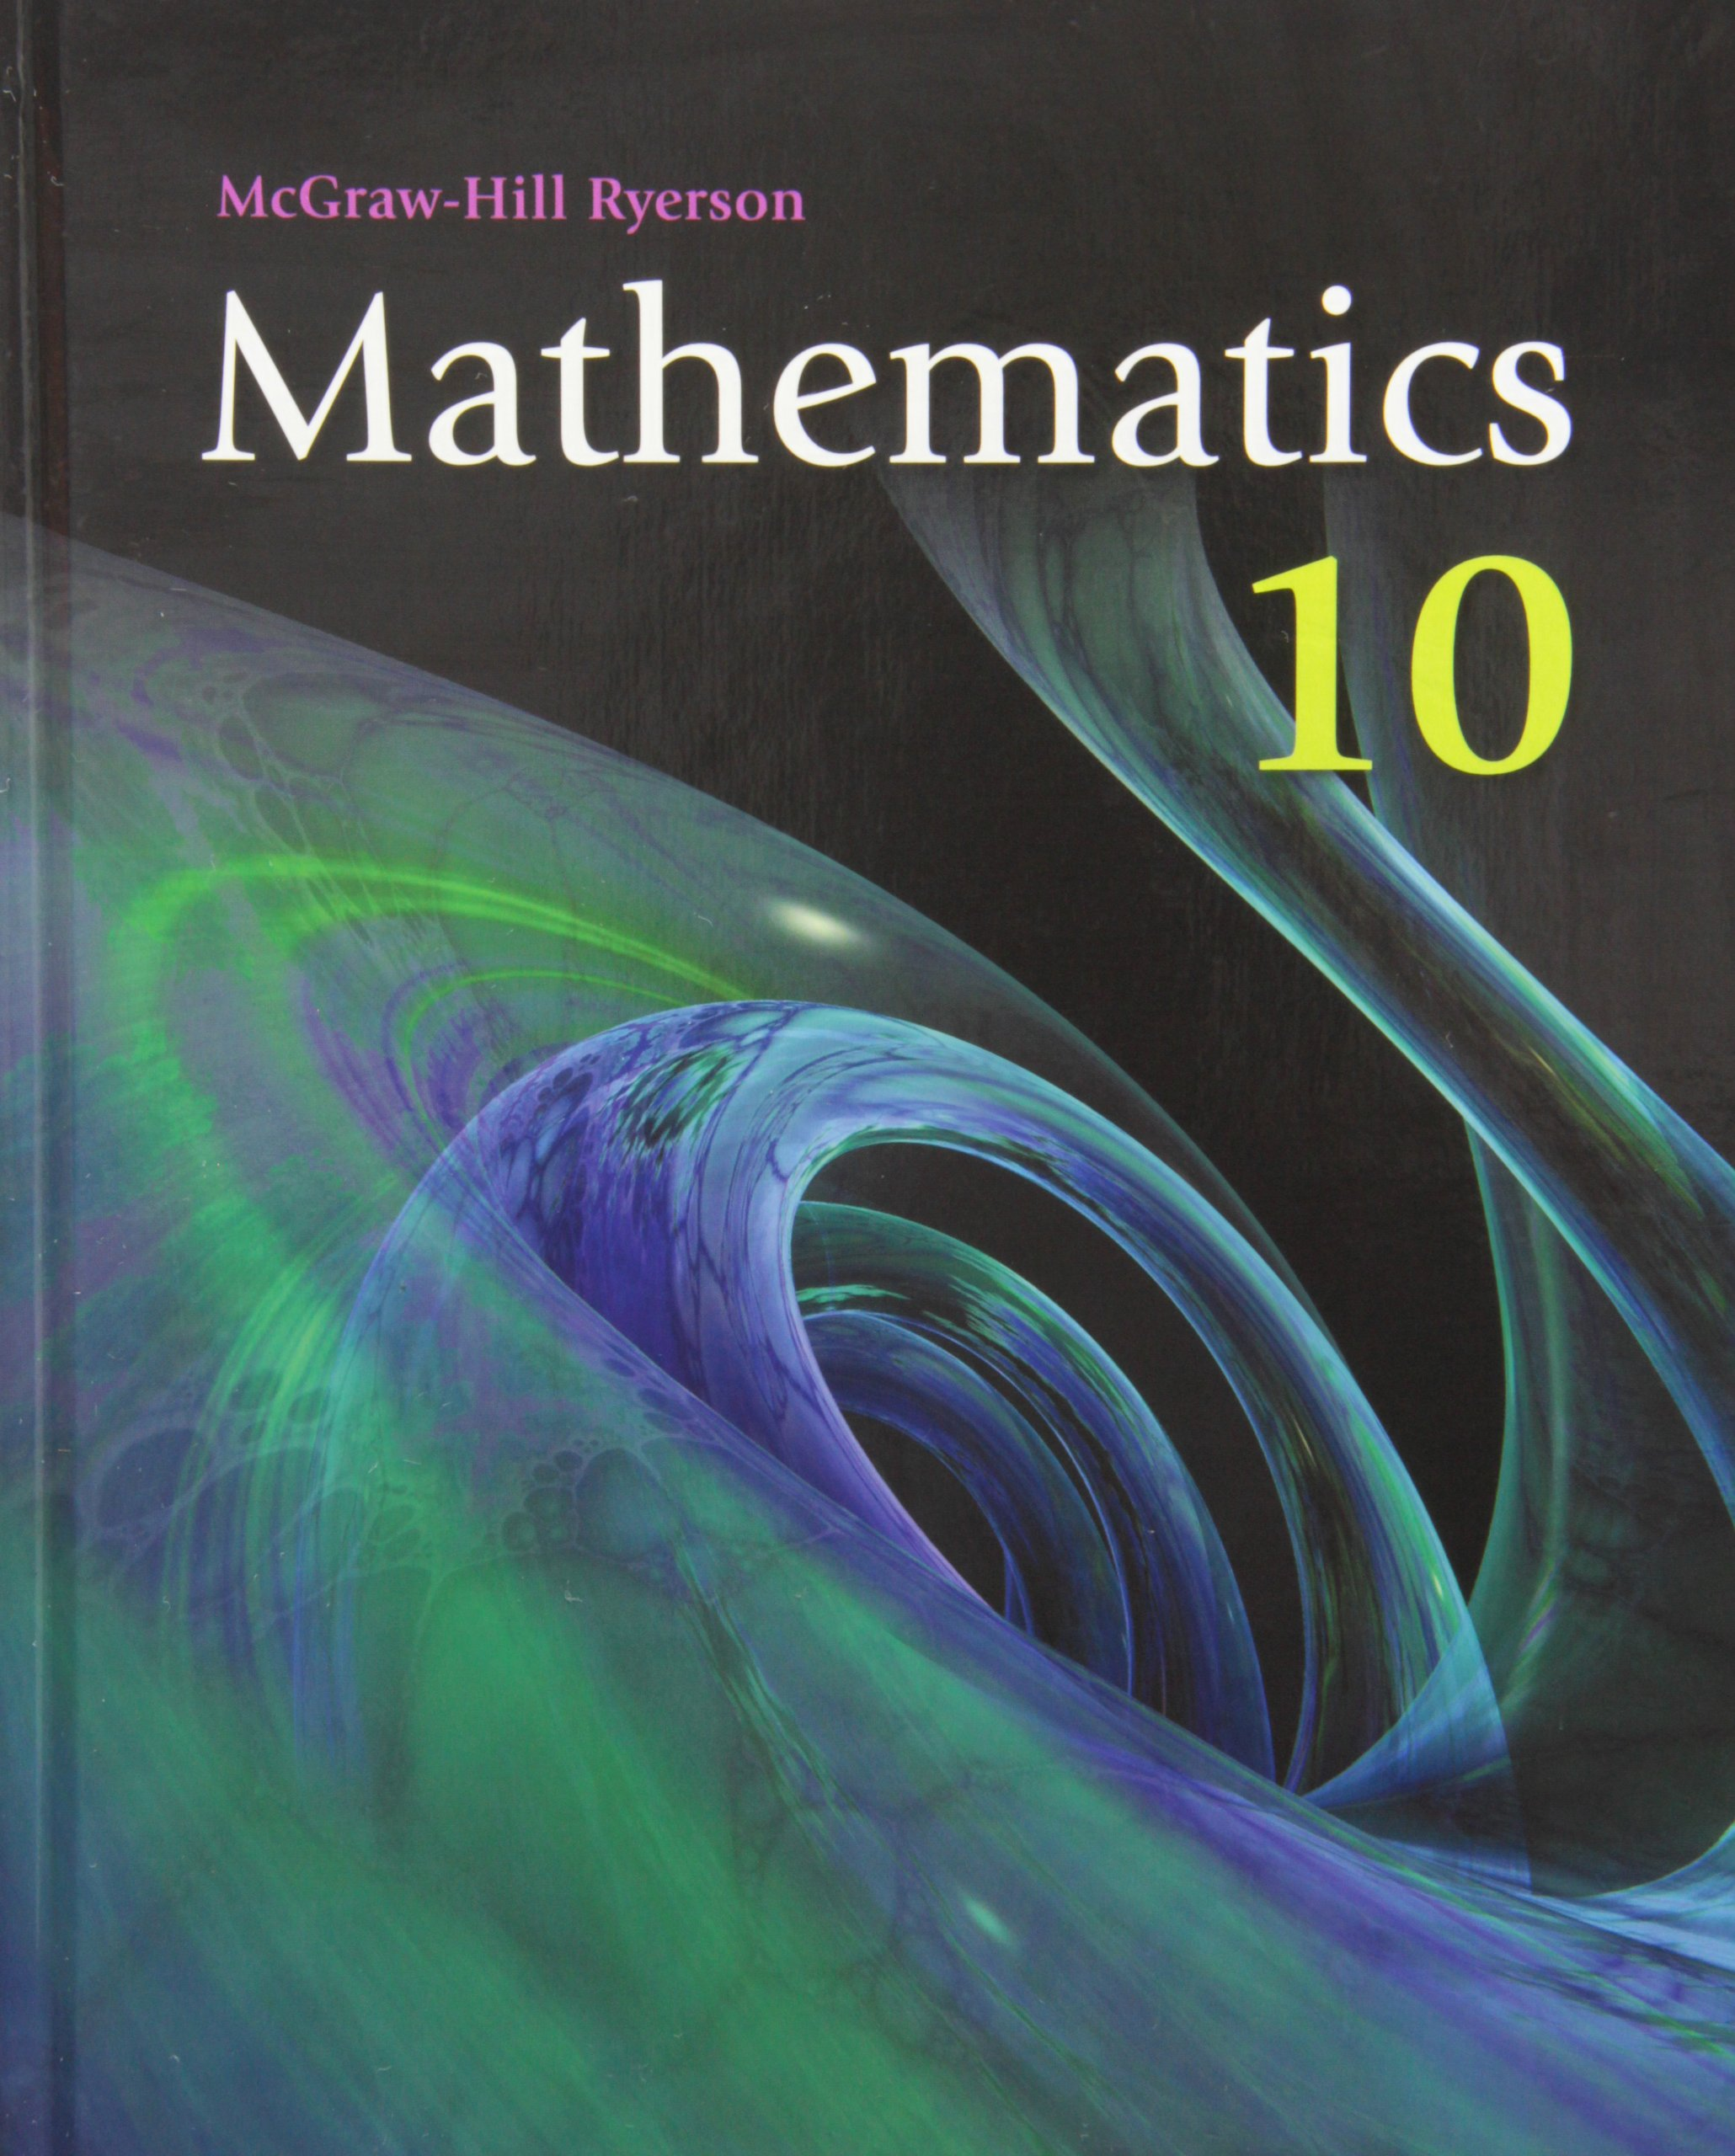 Mcgraw hill ryerson principles of mathematics 10 download.